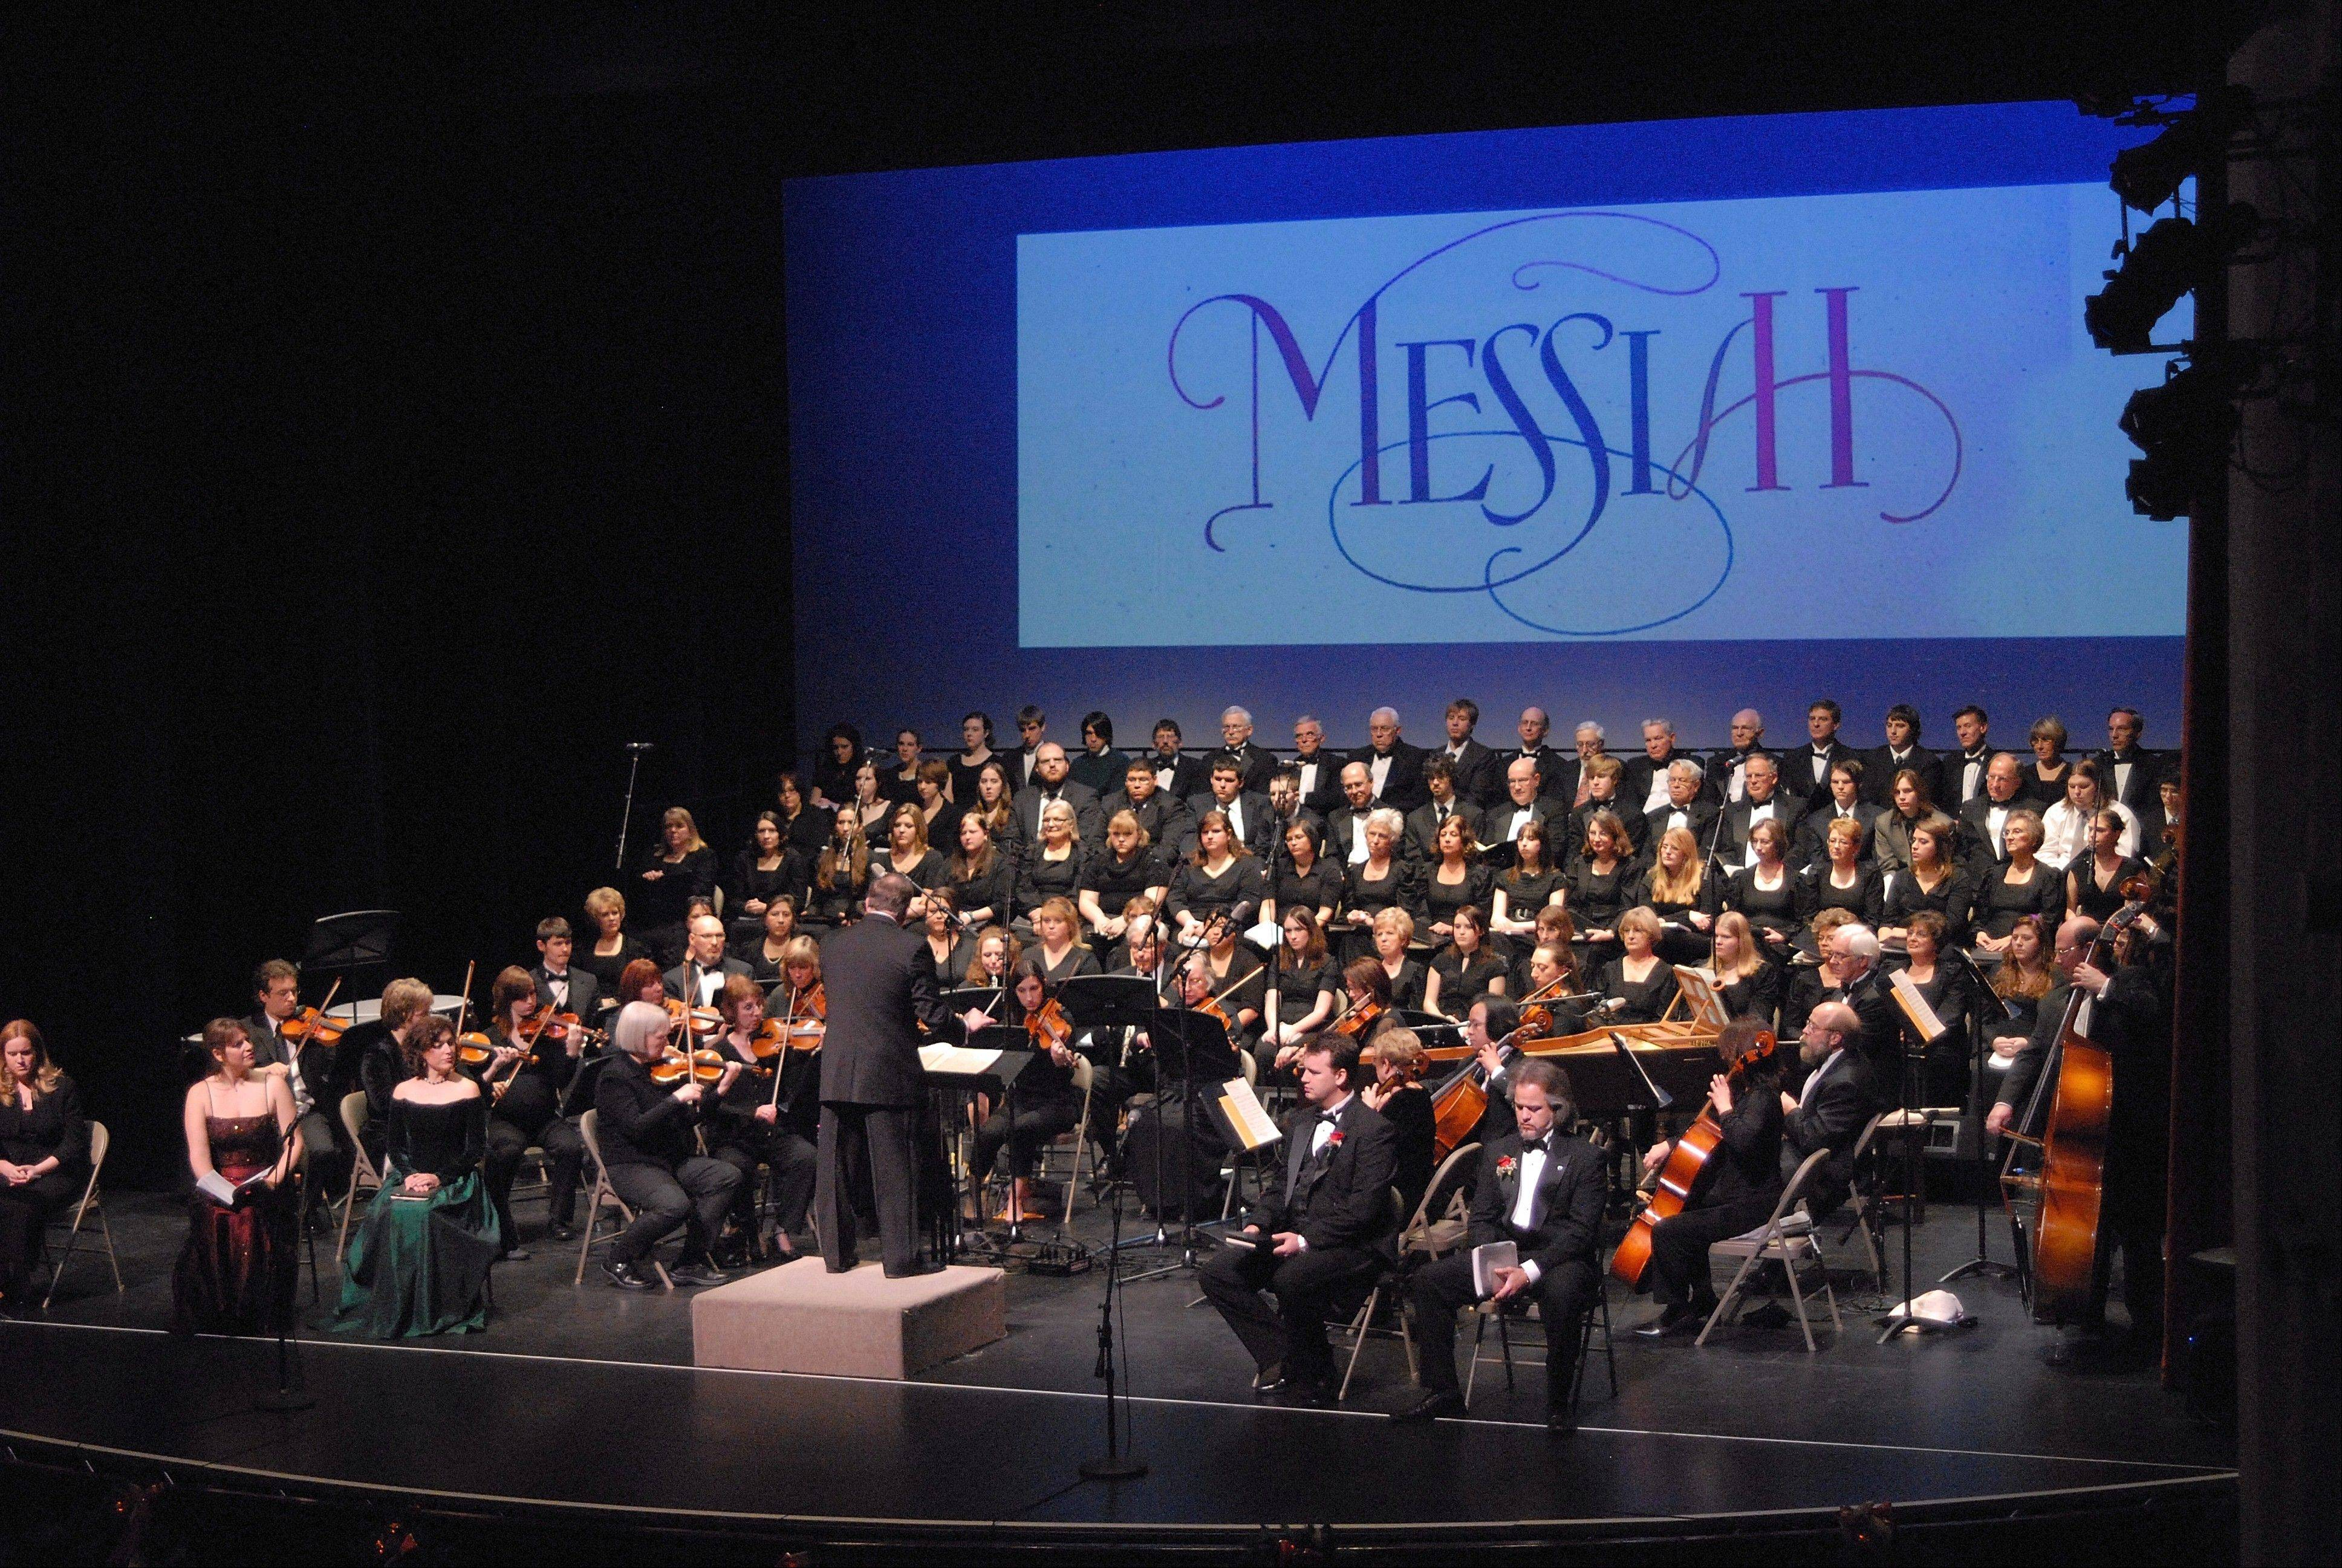 Catch a Sing-Along Messiah with the choirs Voices in Harmony and McHenry County College Choir at the Raue Center for the Arts in Crystal Lake.